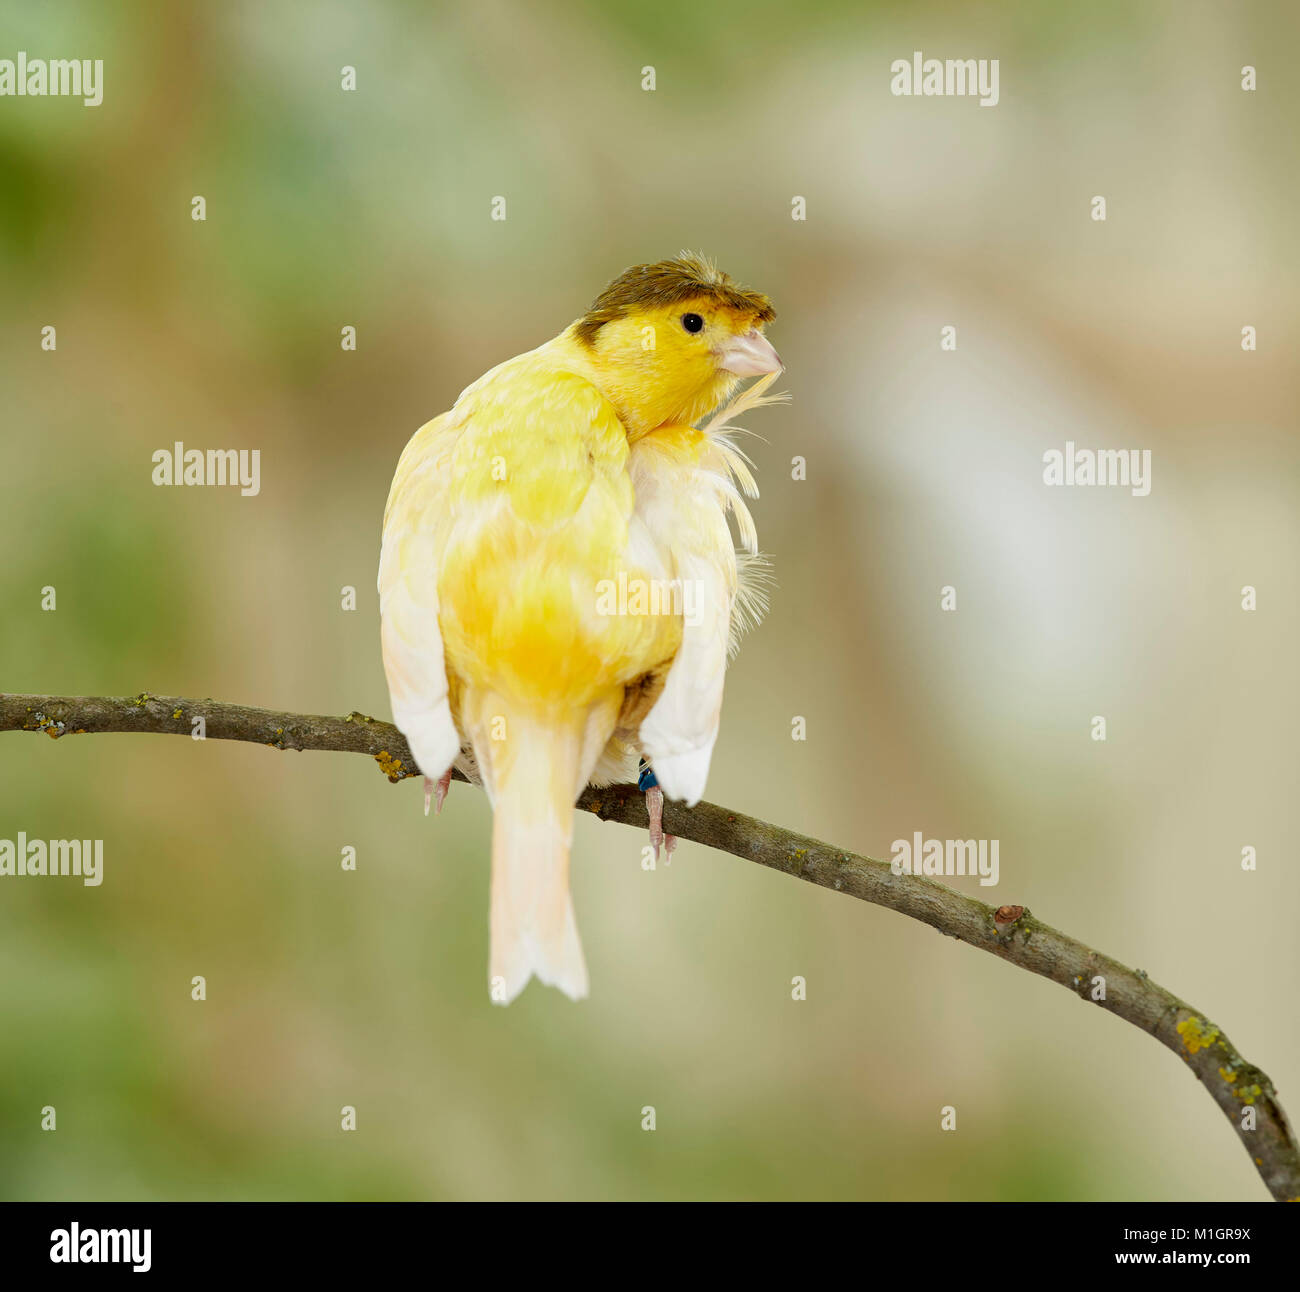 Domestic Canary. Crested bird perched on a twig while preening. Germany - Stock Image